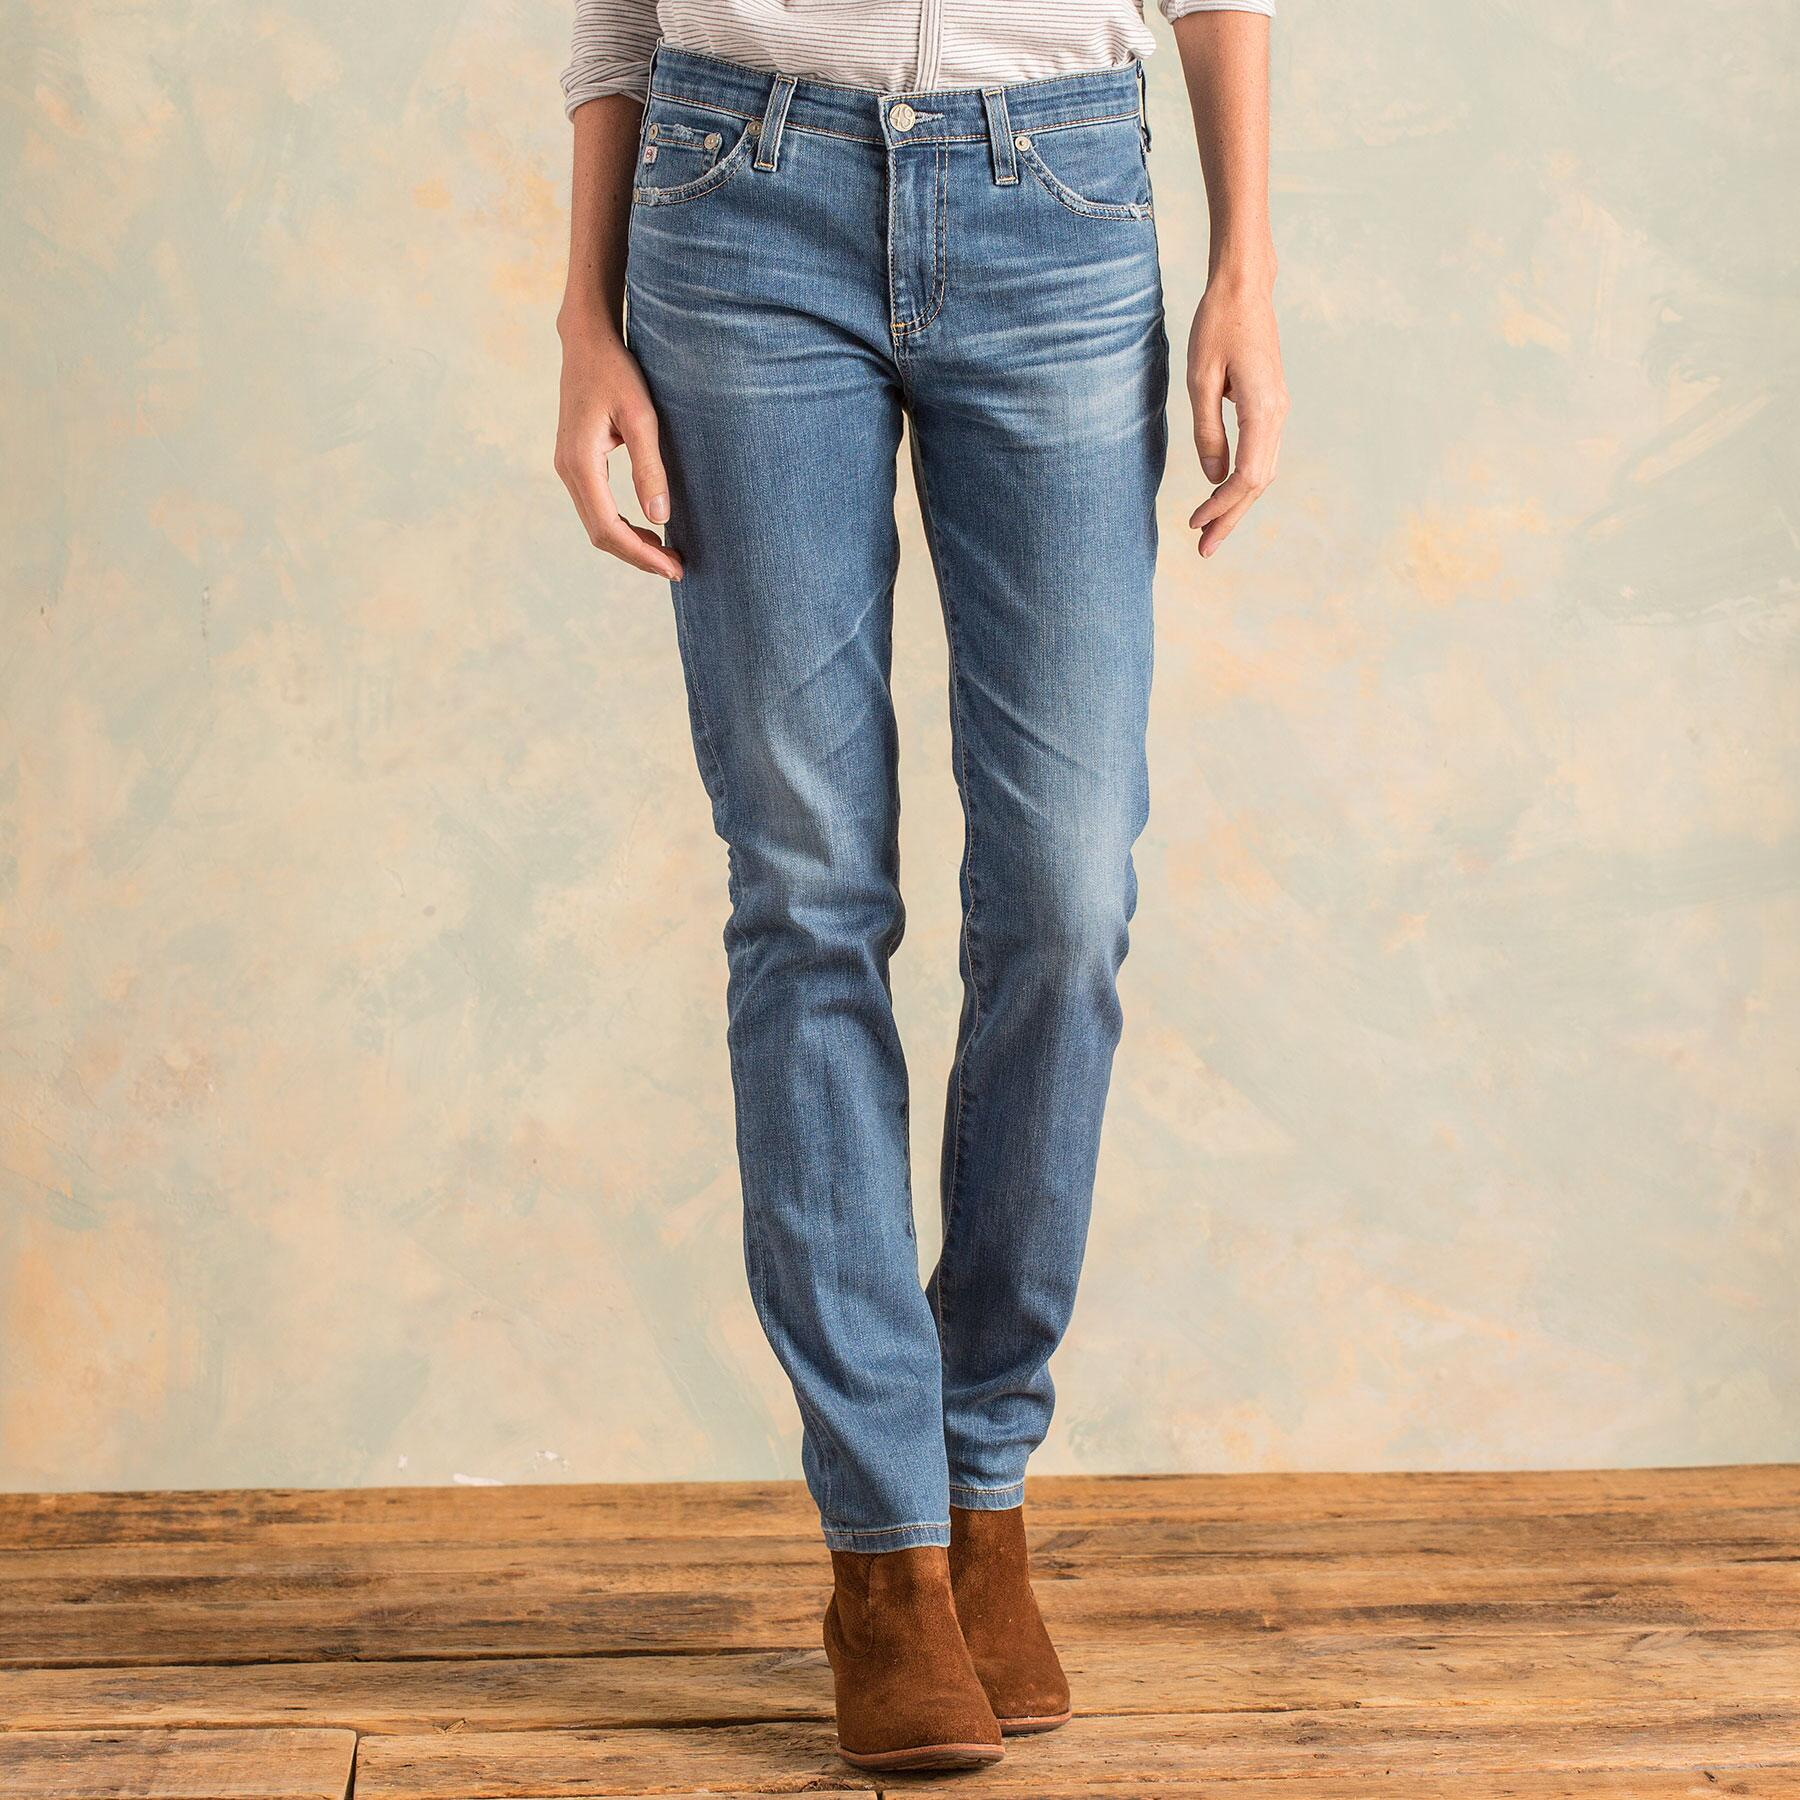 VINTAGE PRIMA JEANS BY A G: View 1